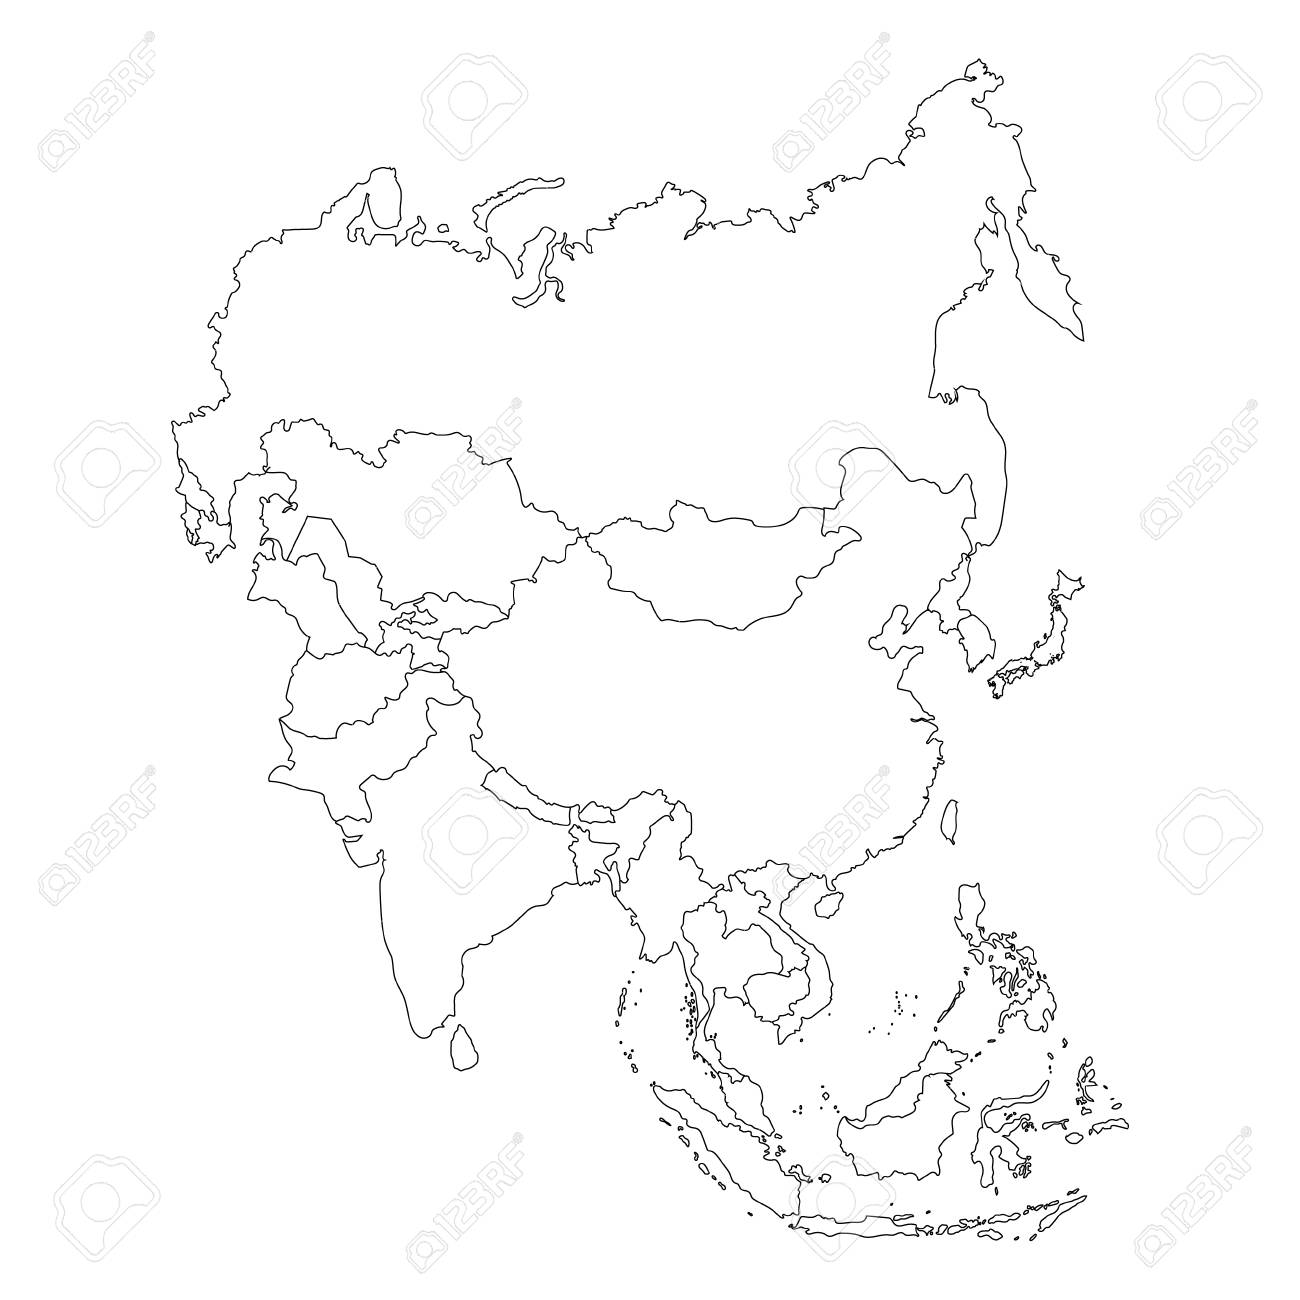 Raster Illustration Asia Outline Map Isolated On White Background ...